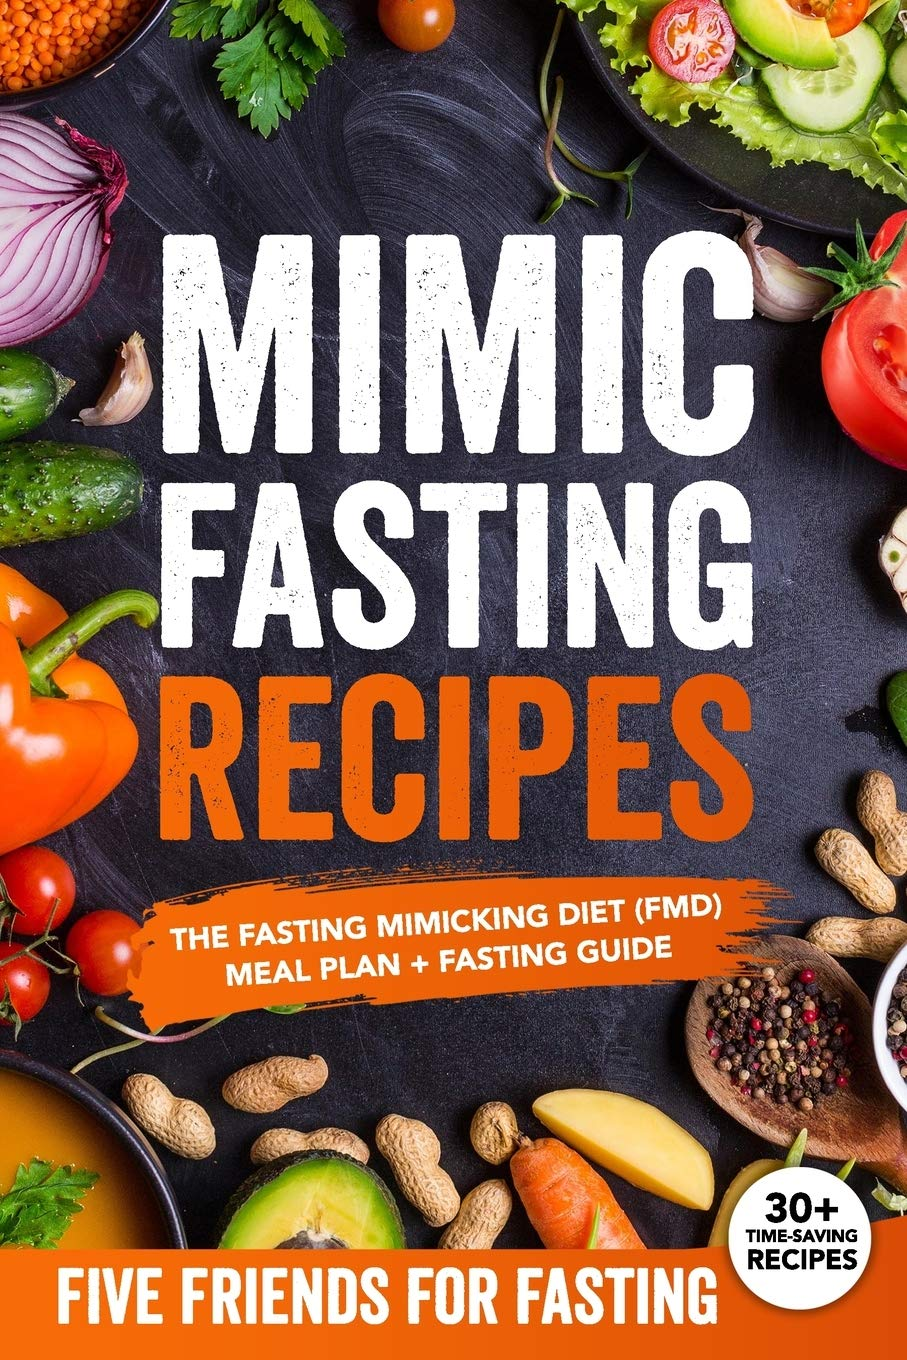 Mimic Fasting Recipes: The Fasting Mimicking Diet (FMD): Meal Plan + Fasting Guide. Over 30 Recipes and Exact Doses